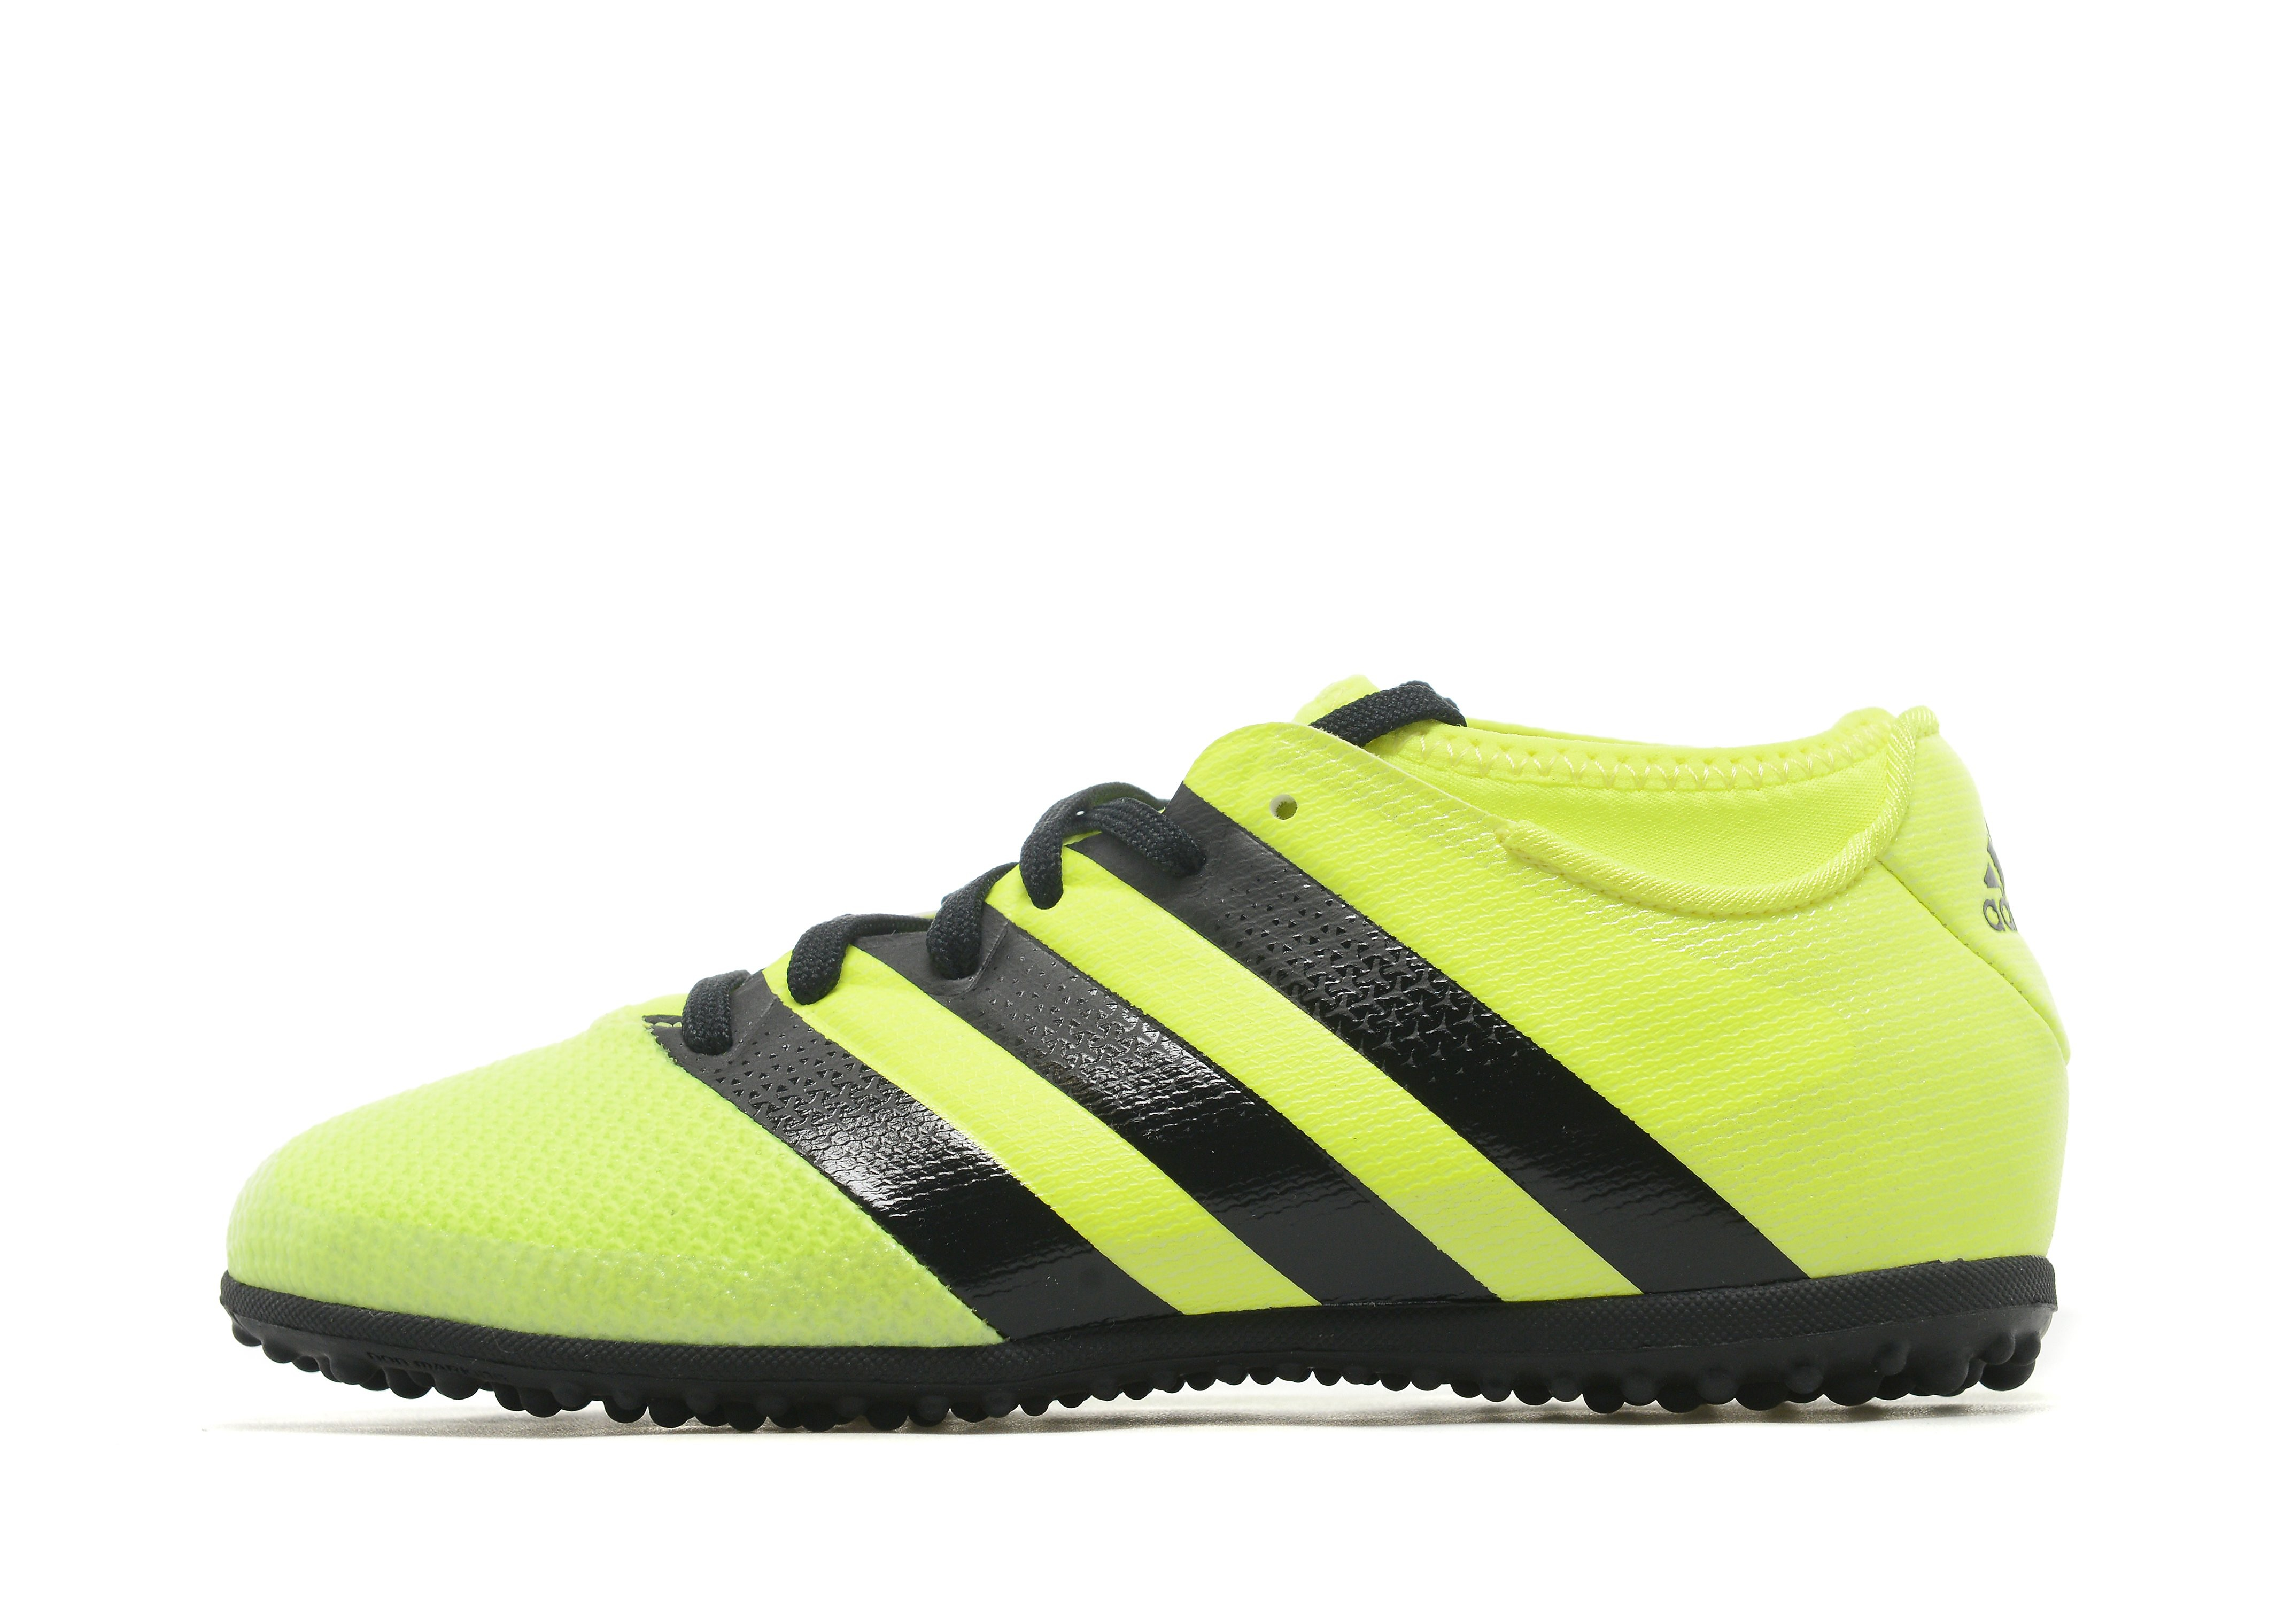 adidas Ace 16.3 Turf Children